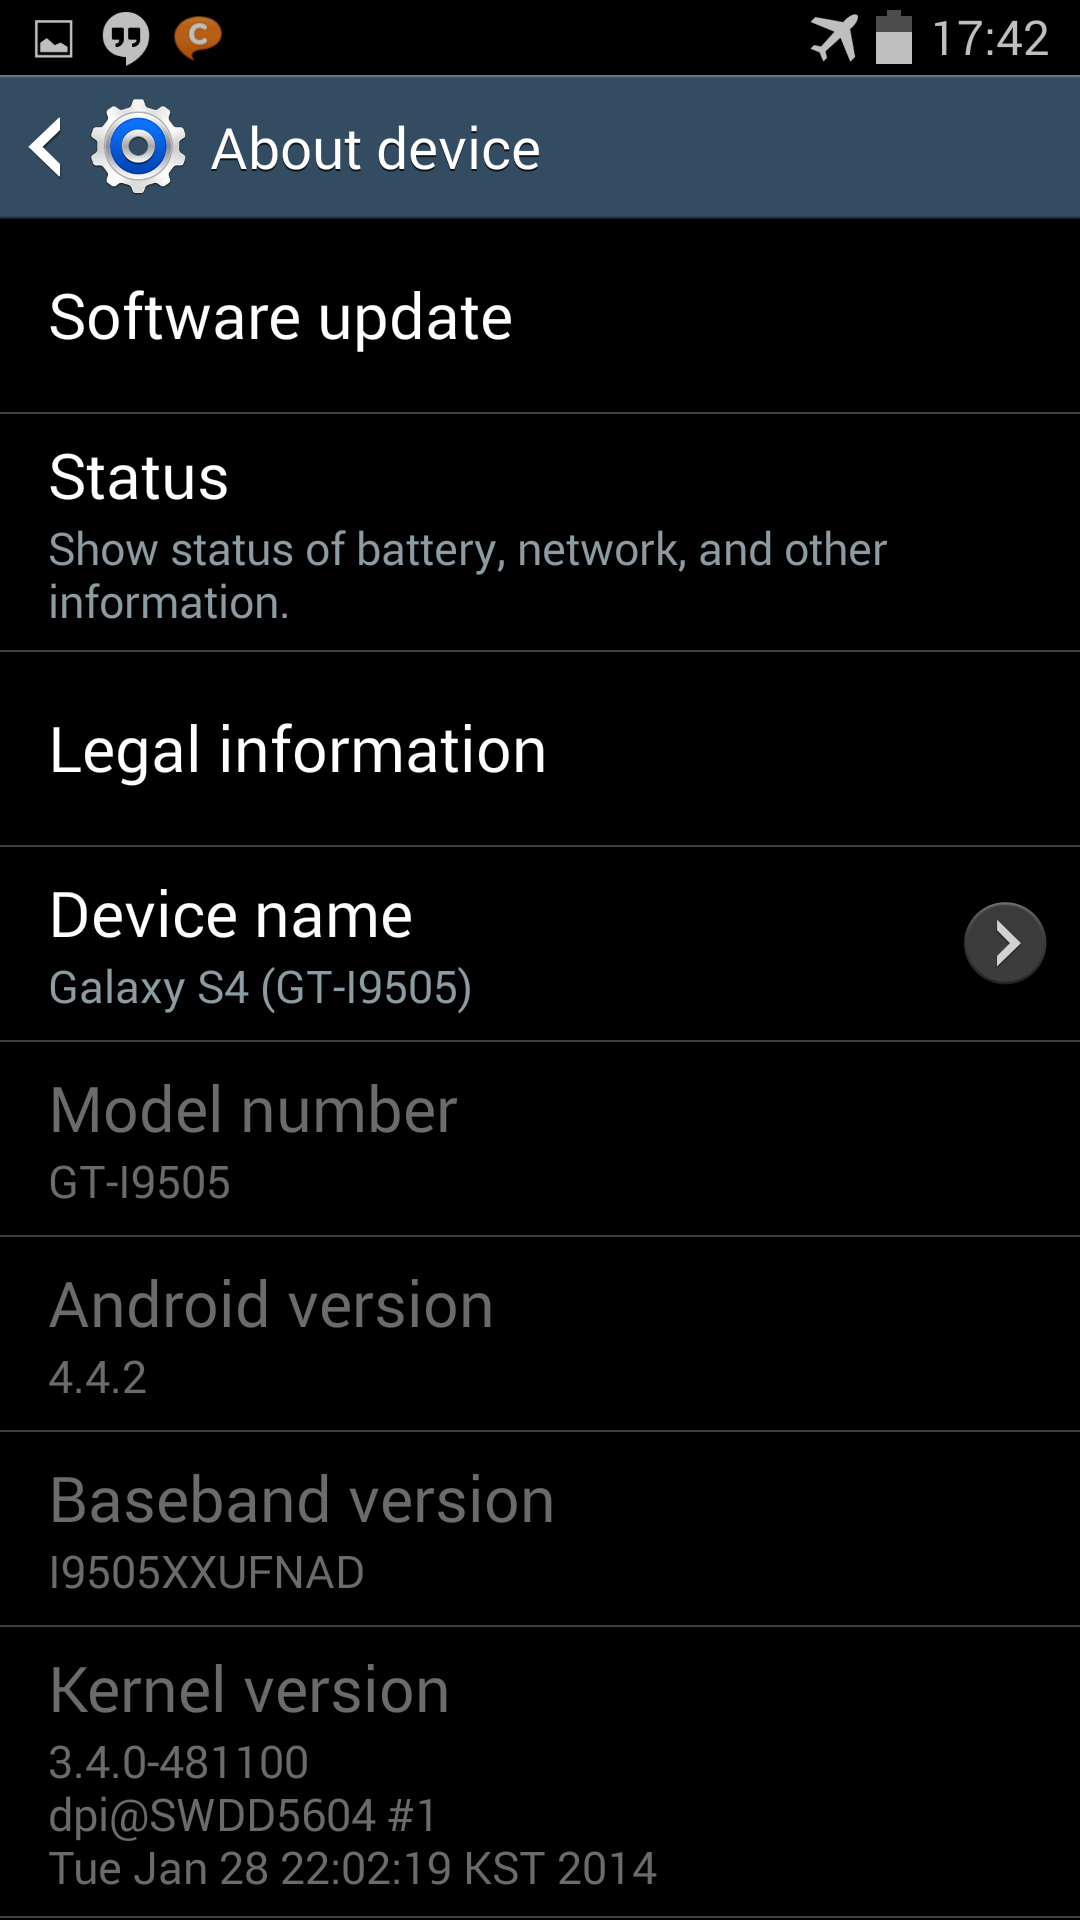 S4 Android 4.4.2 - 3